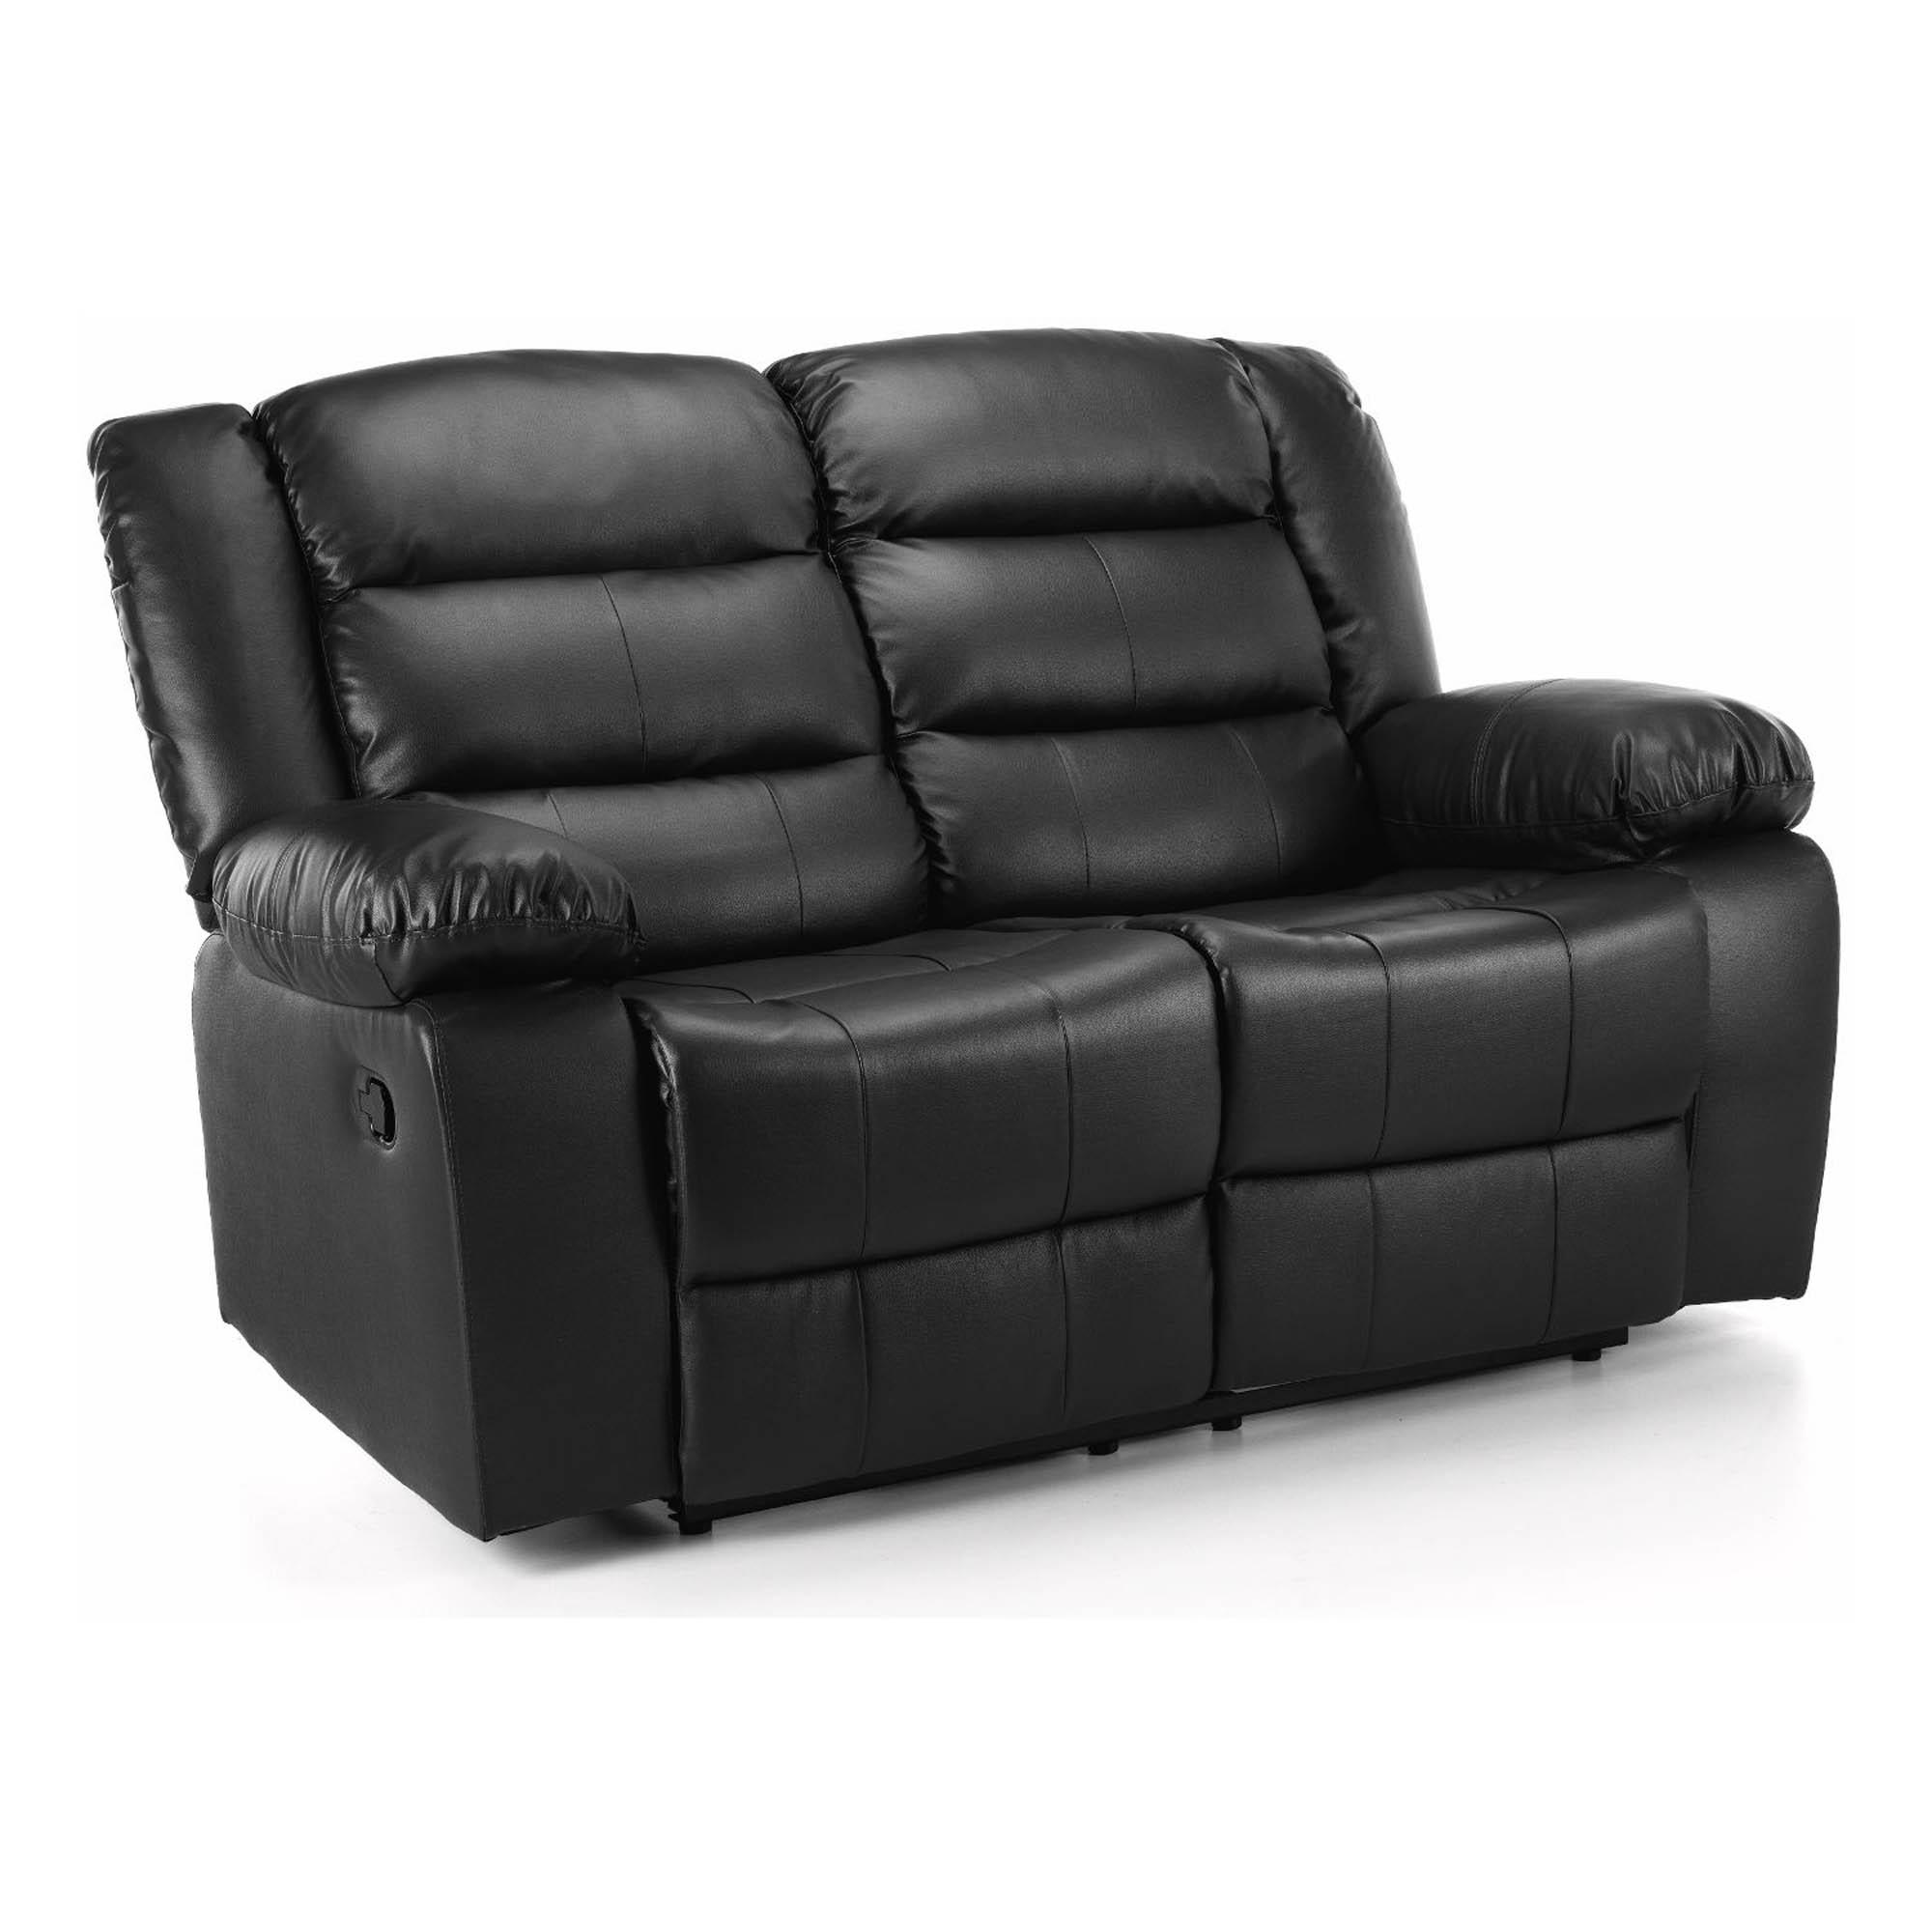 Whitfield 2 Seater Leather Reclining Sofa